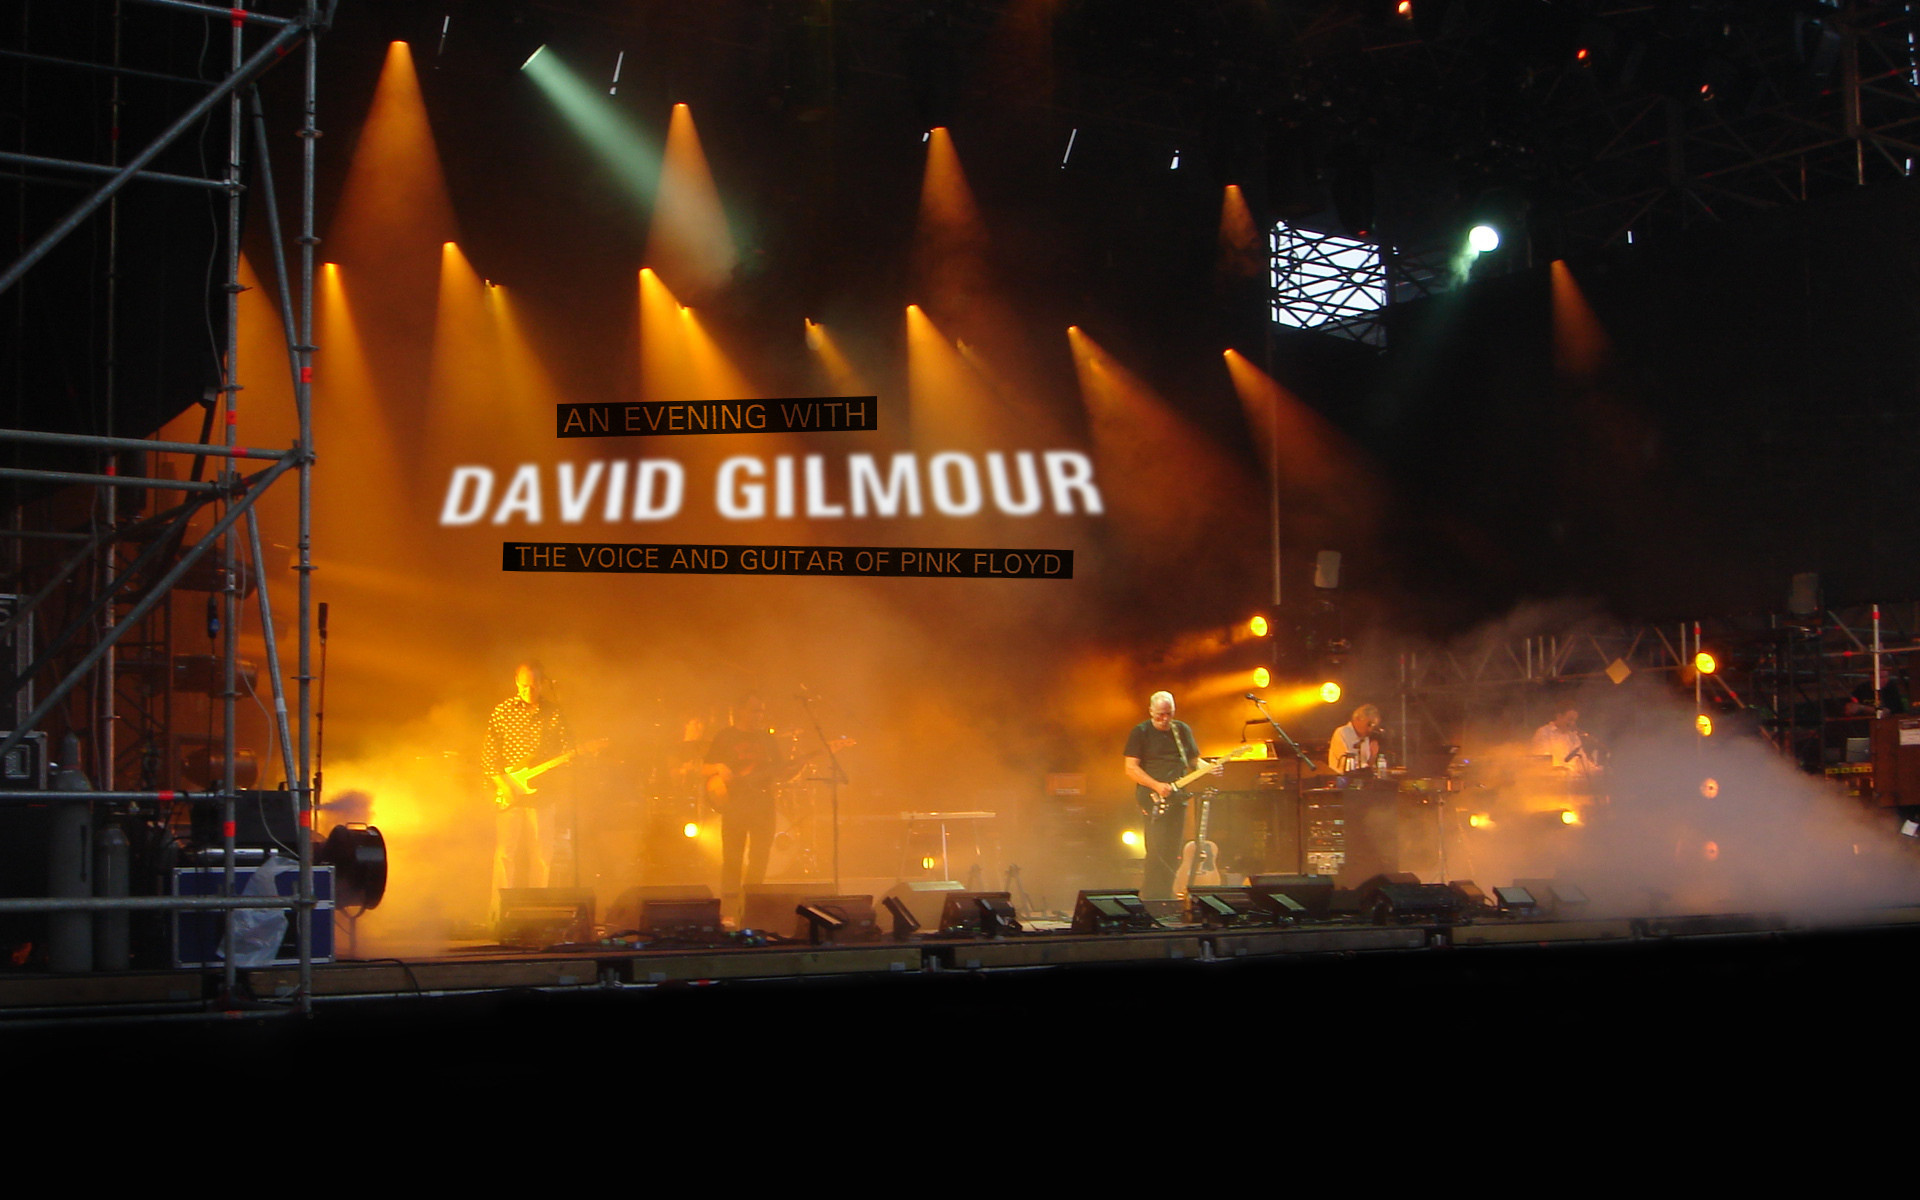 1920x1200 Pink Floyd images David Gilmour of Pink Floyd HD wallpaper and background  photos